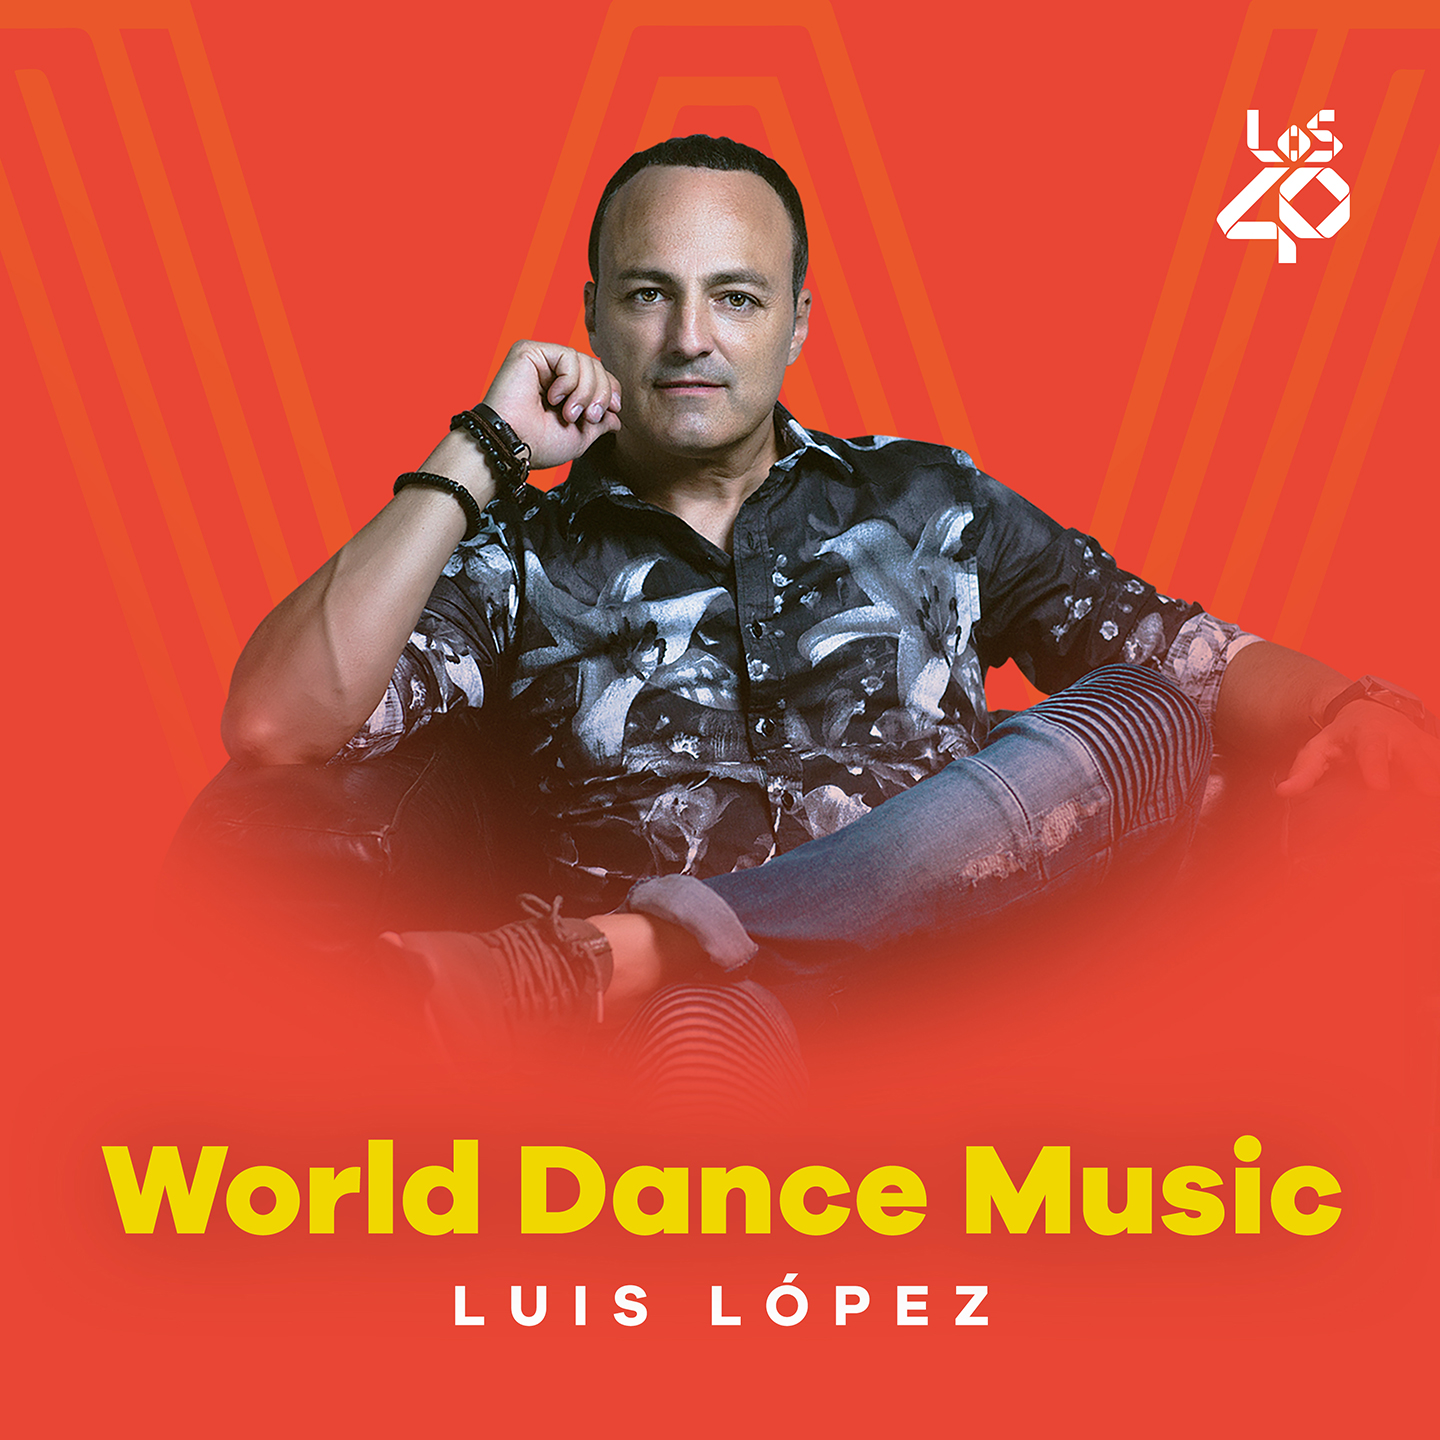 World Dance Music Programa completo